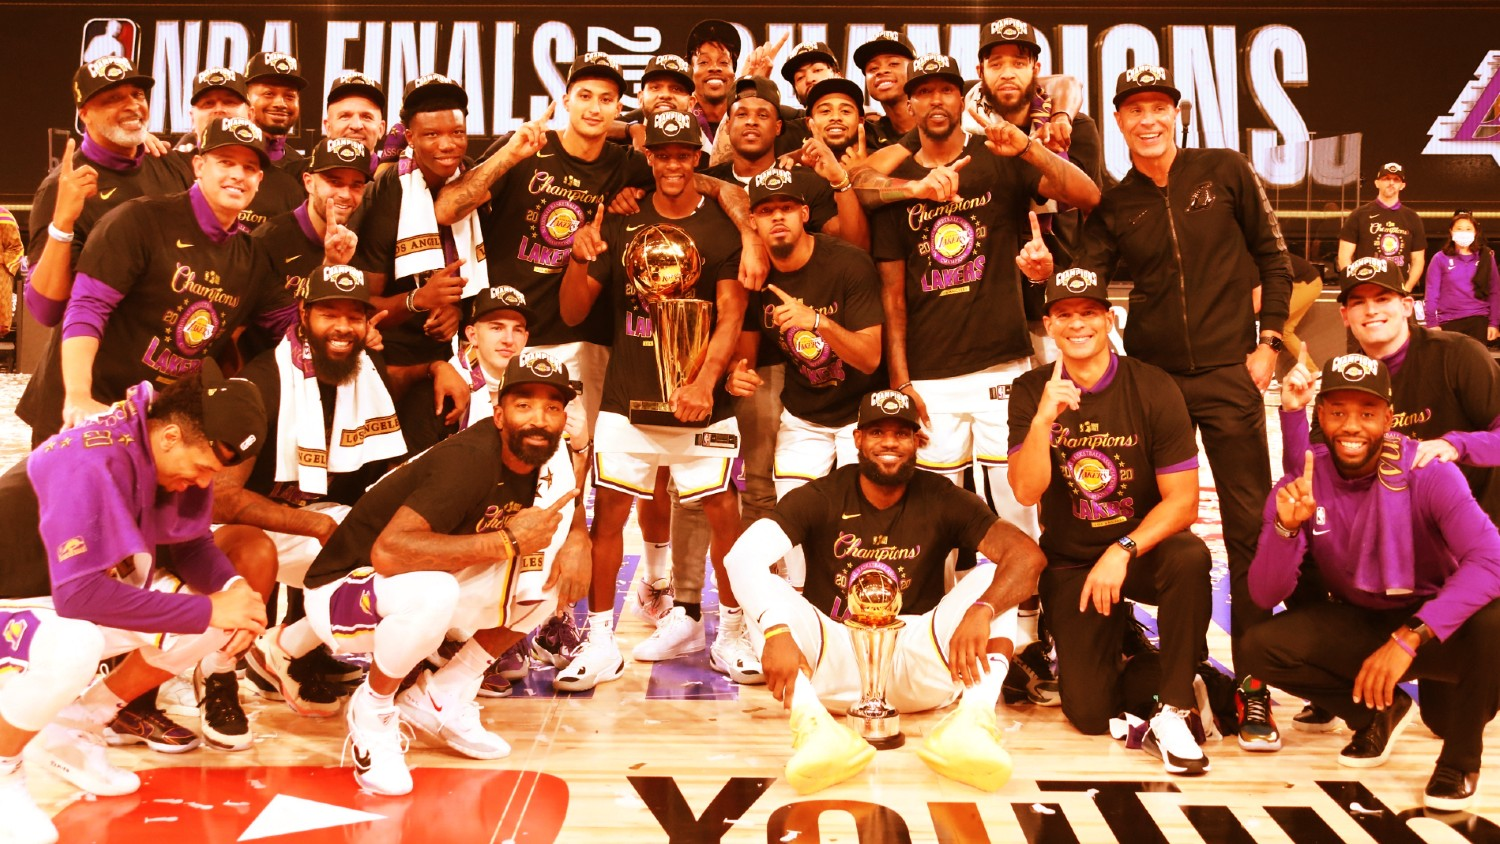 Report Cards & Predictions for Each Player on Lakers' Championship Team